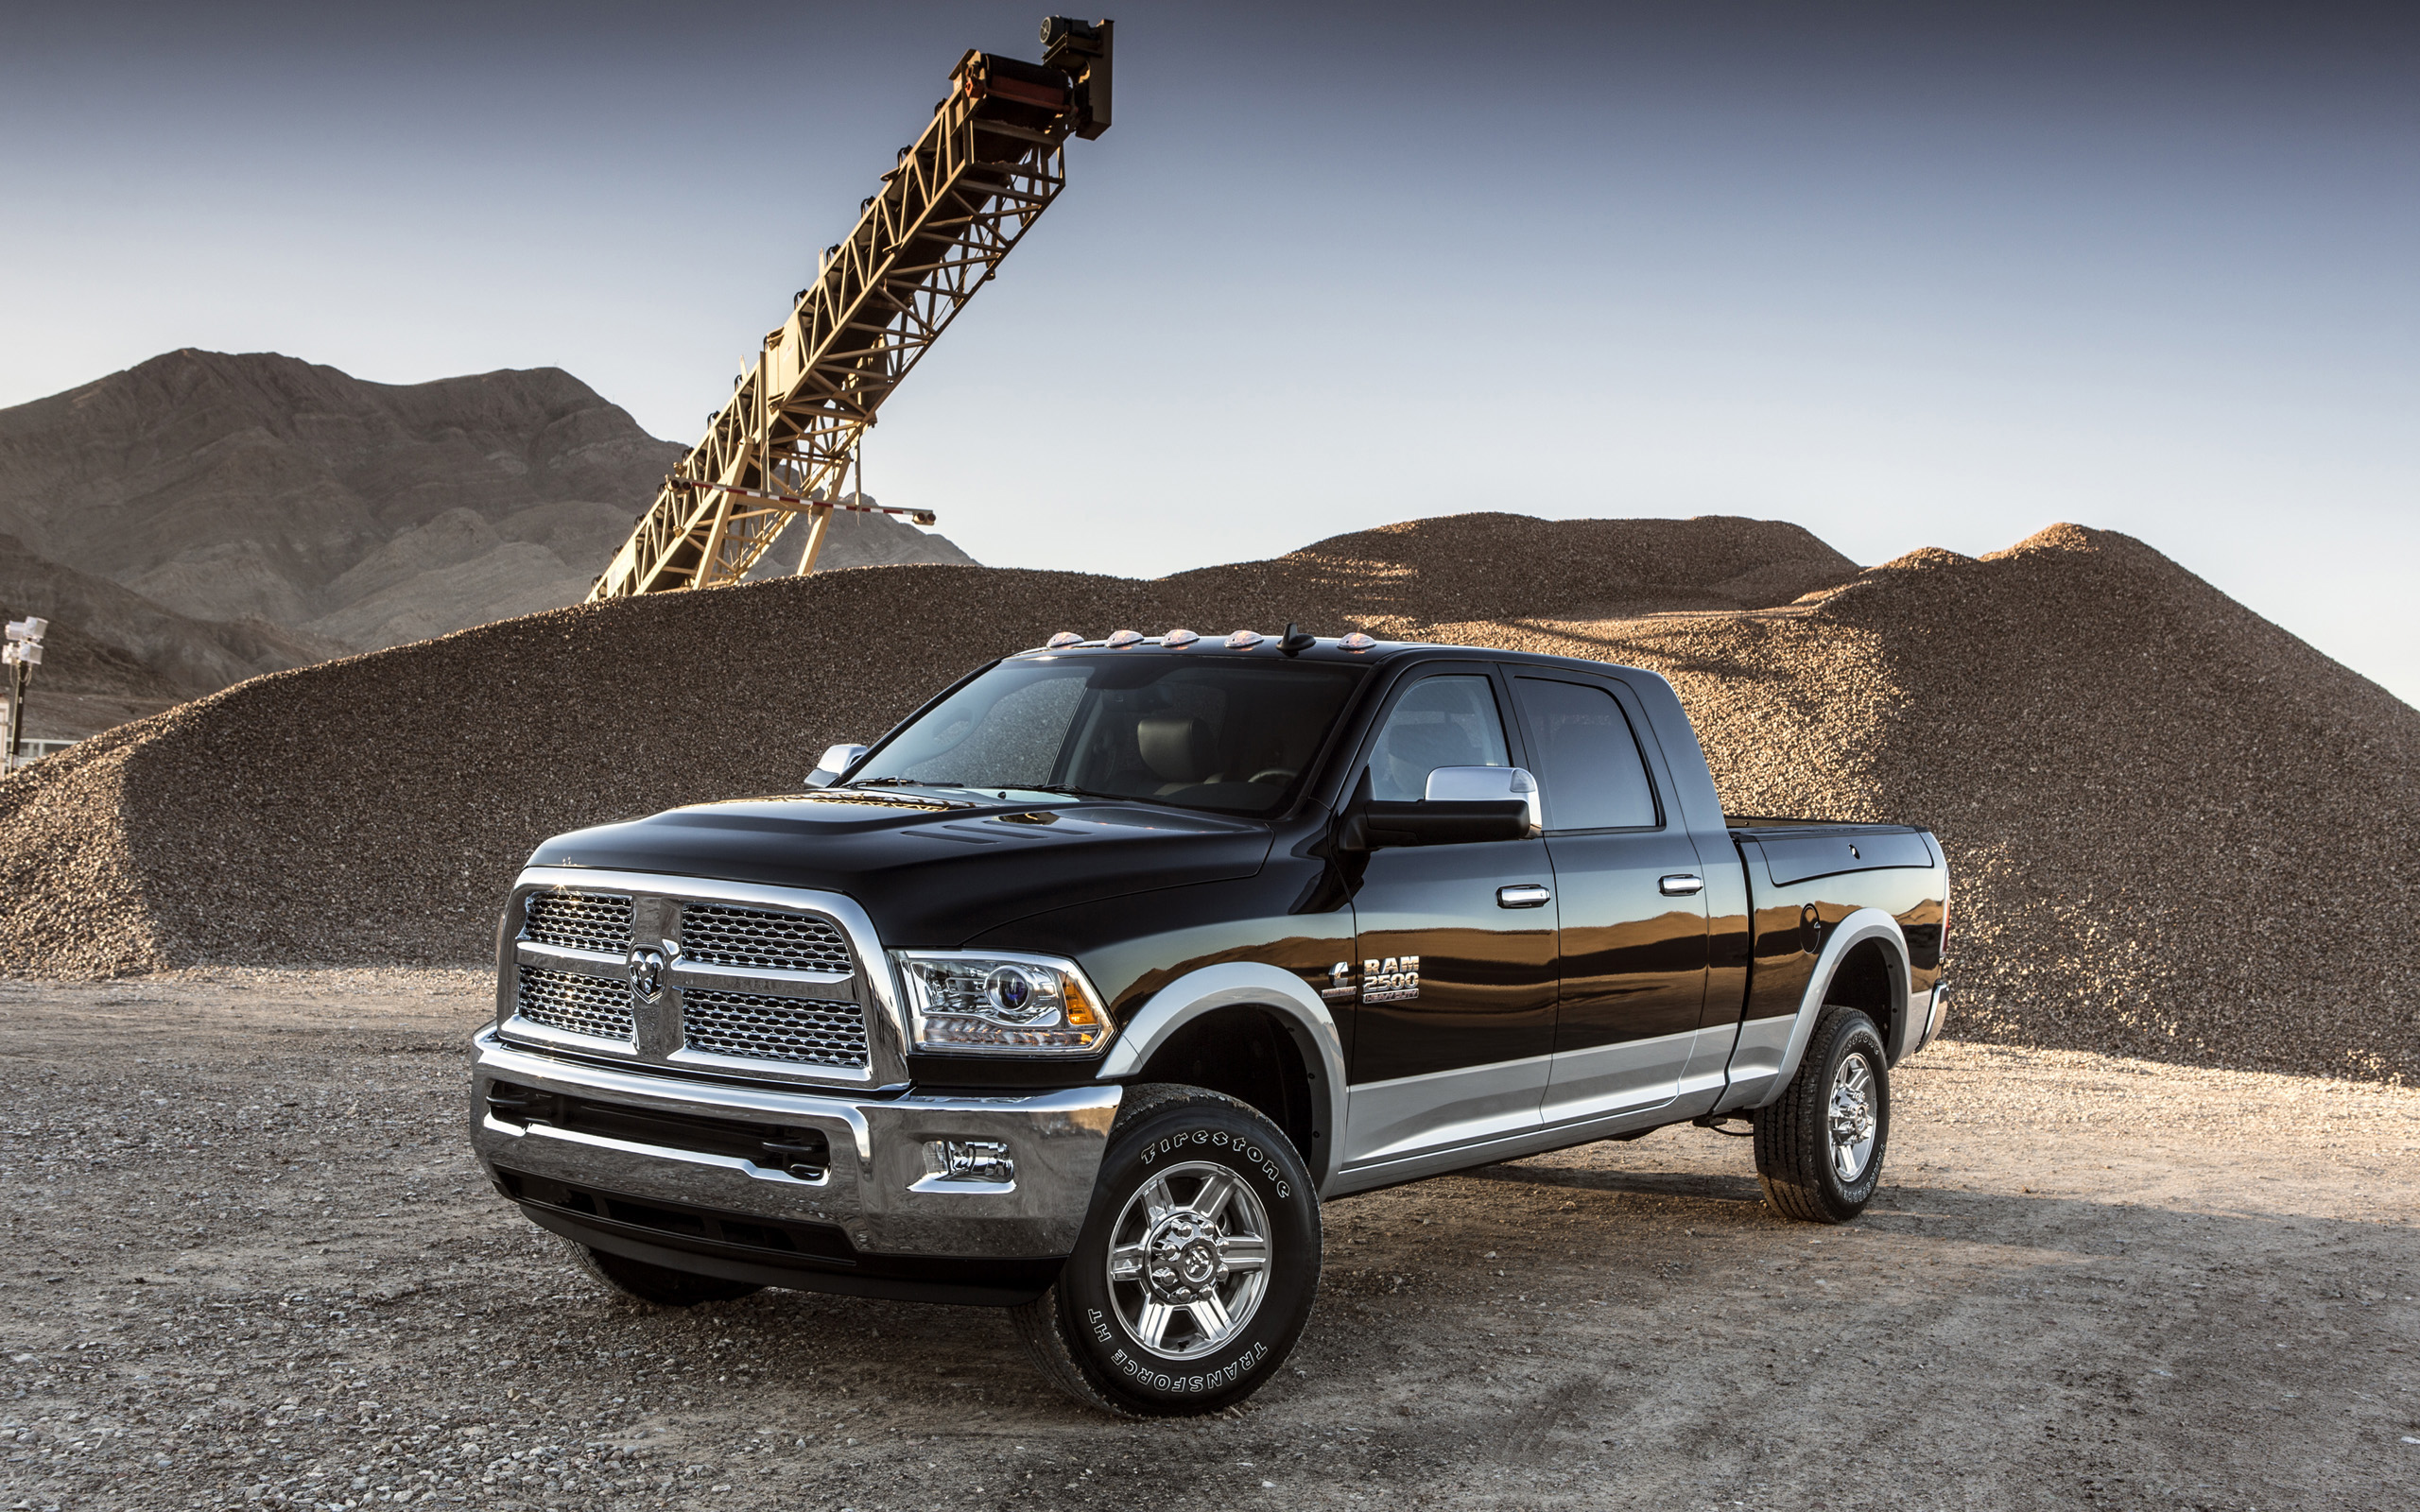 2013 Dodge Ram 2500 4x4 truck wallpaper 2560x1600 112290 2560x1600